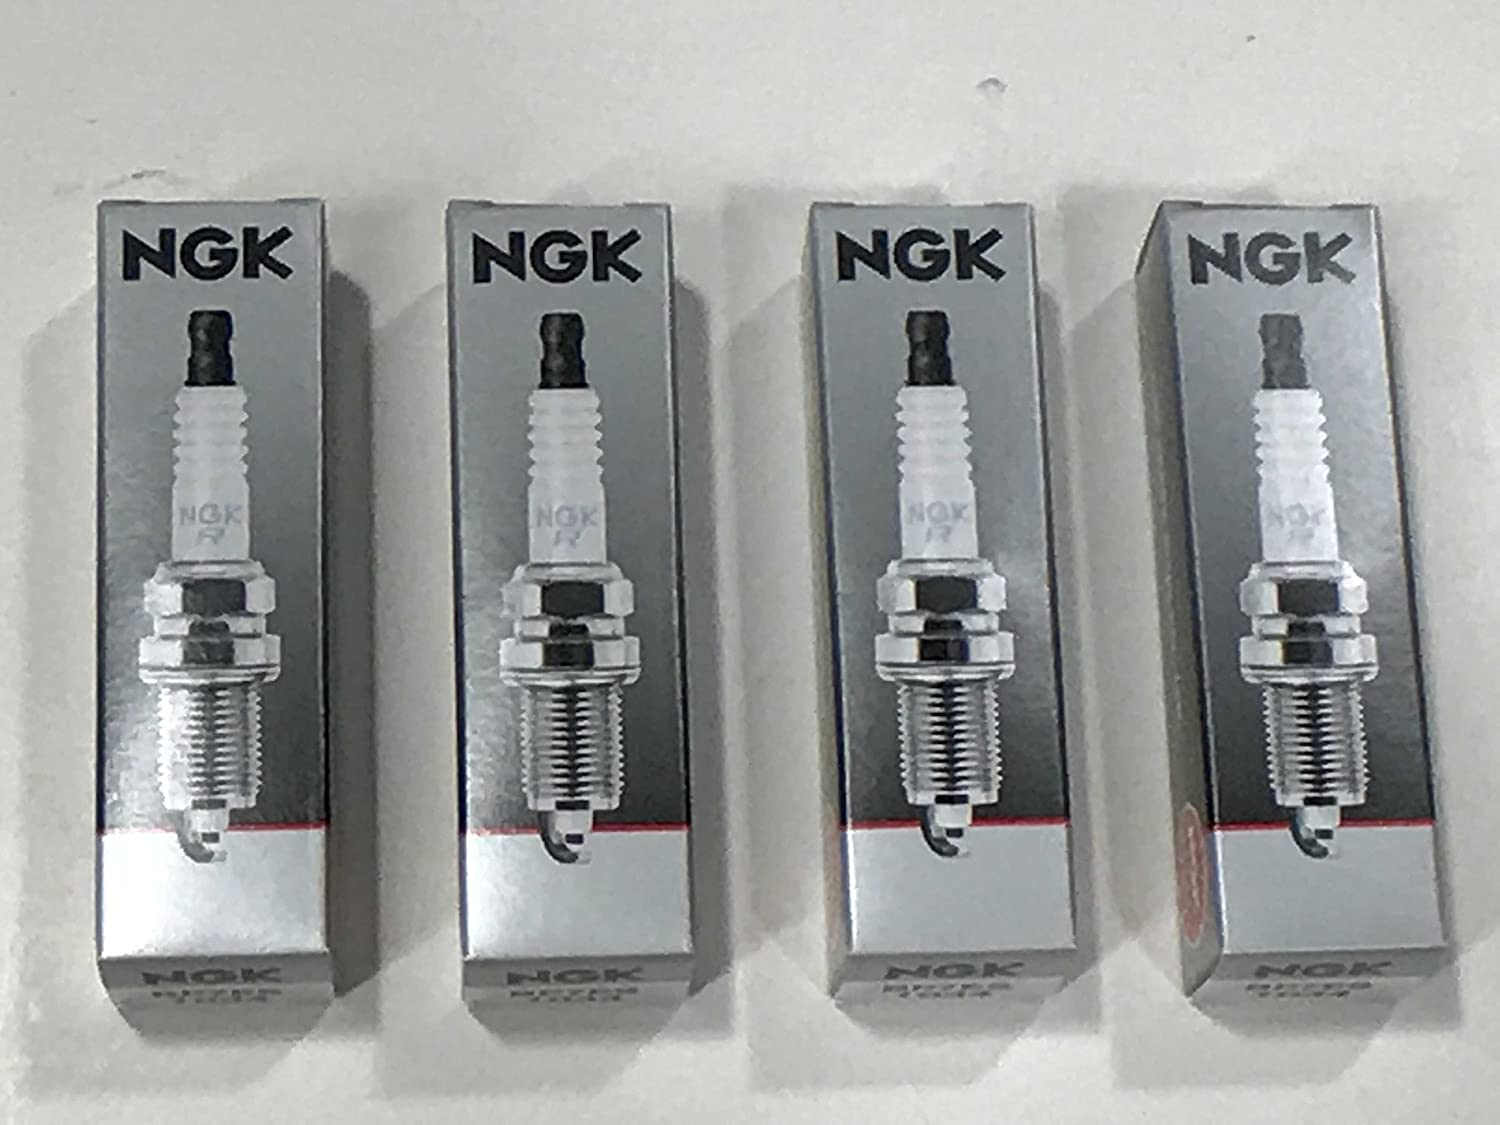 Amazon.com: Box Of Four New Replacement NGK Single Electrode Spark Plugs ReplacementBMW R Airhead Moto Guzzi Motorcycle 12 12 1 338 146: Automotive